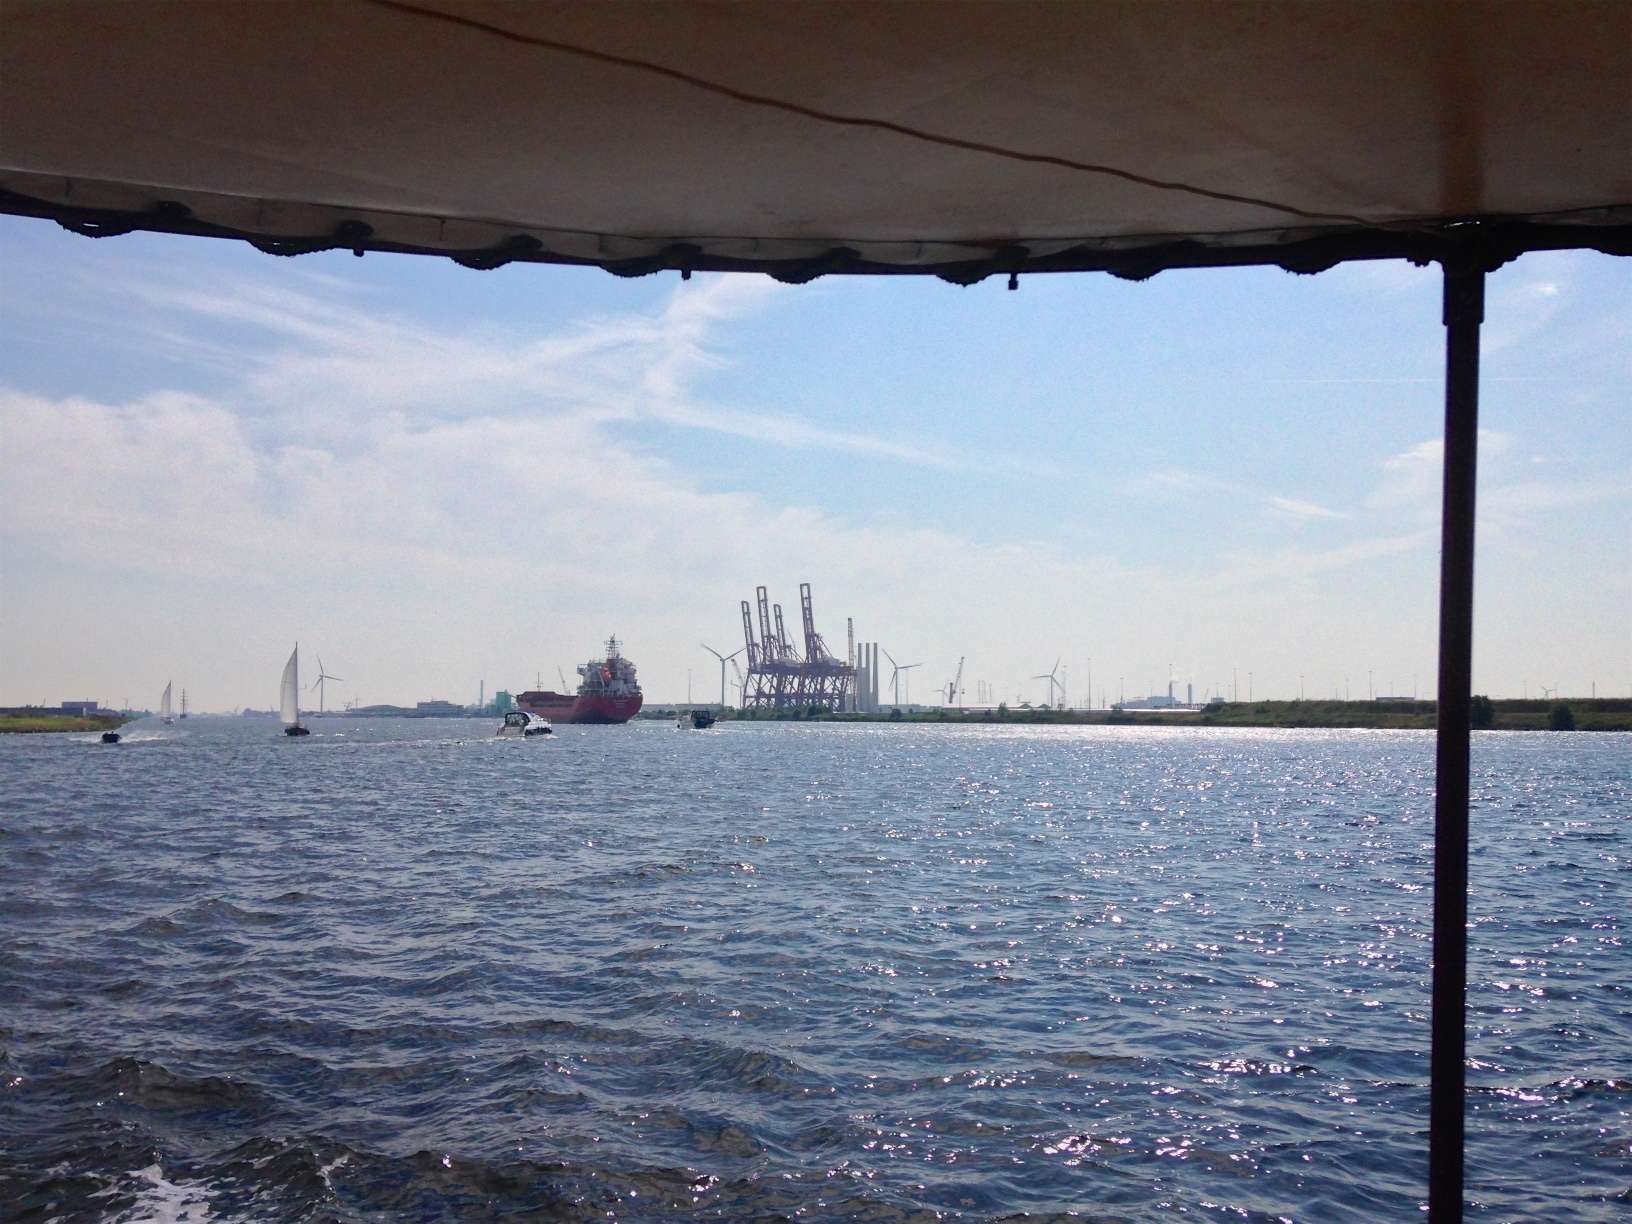 ... and across the Noordzeekanaal, which despite it being 'Sail-out' day, was nice and quiet - to our great relief.